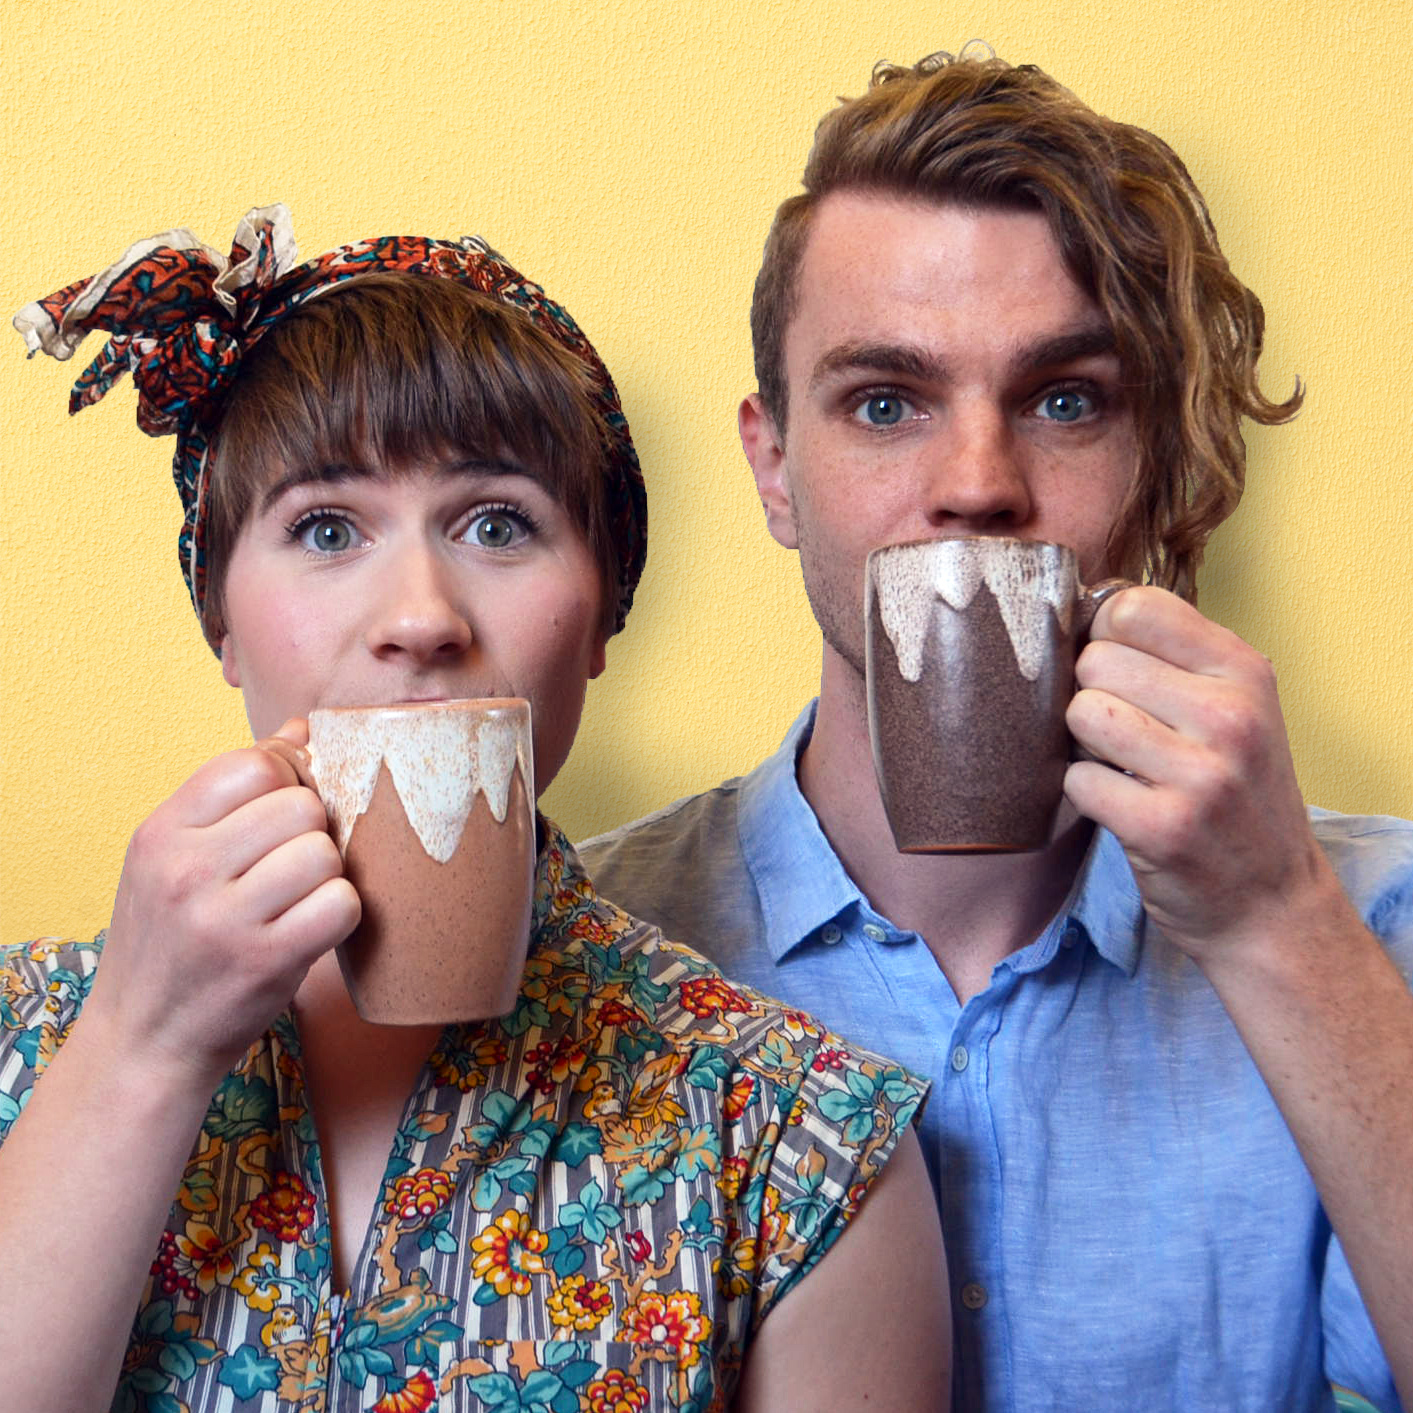 Catherine_Holder_and_Pearce_Hessling_in_Cafe_Play__image_by_C_Holder.jpg